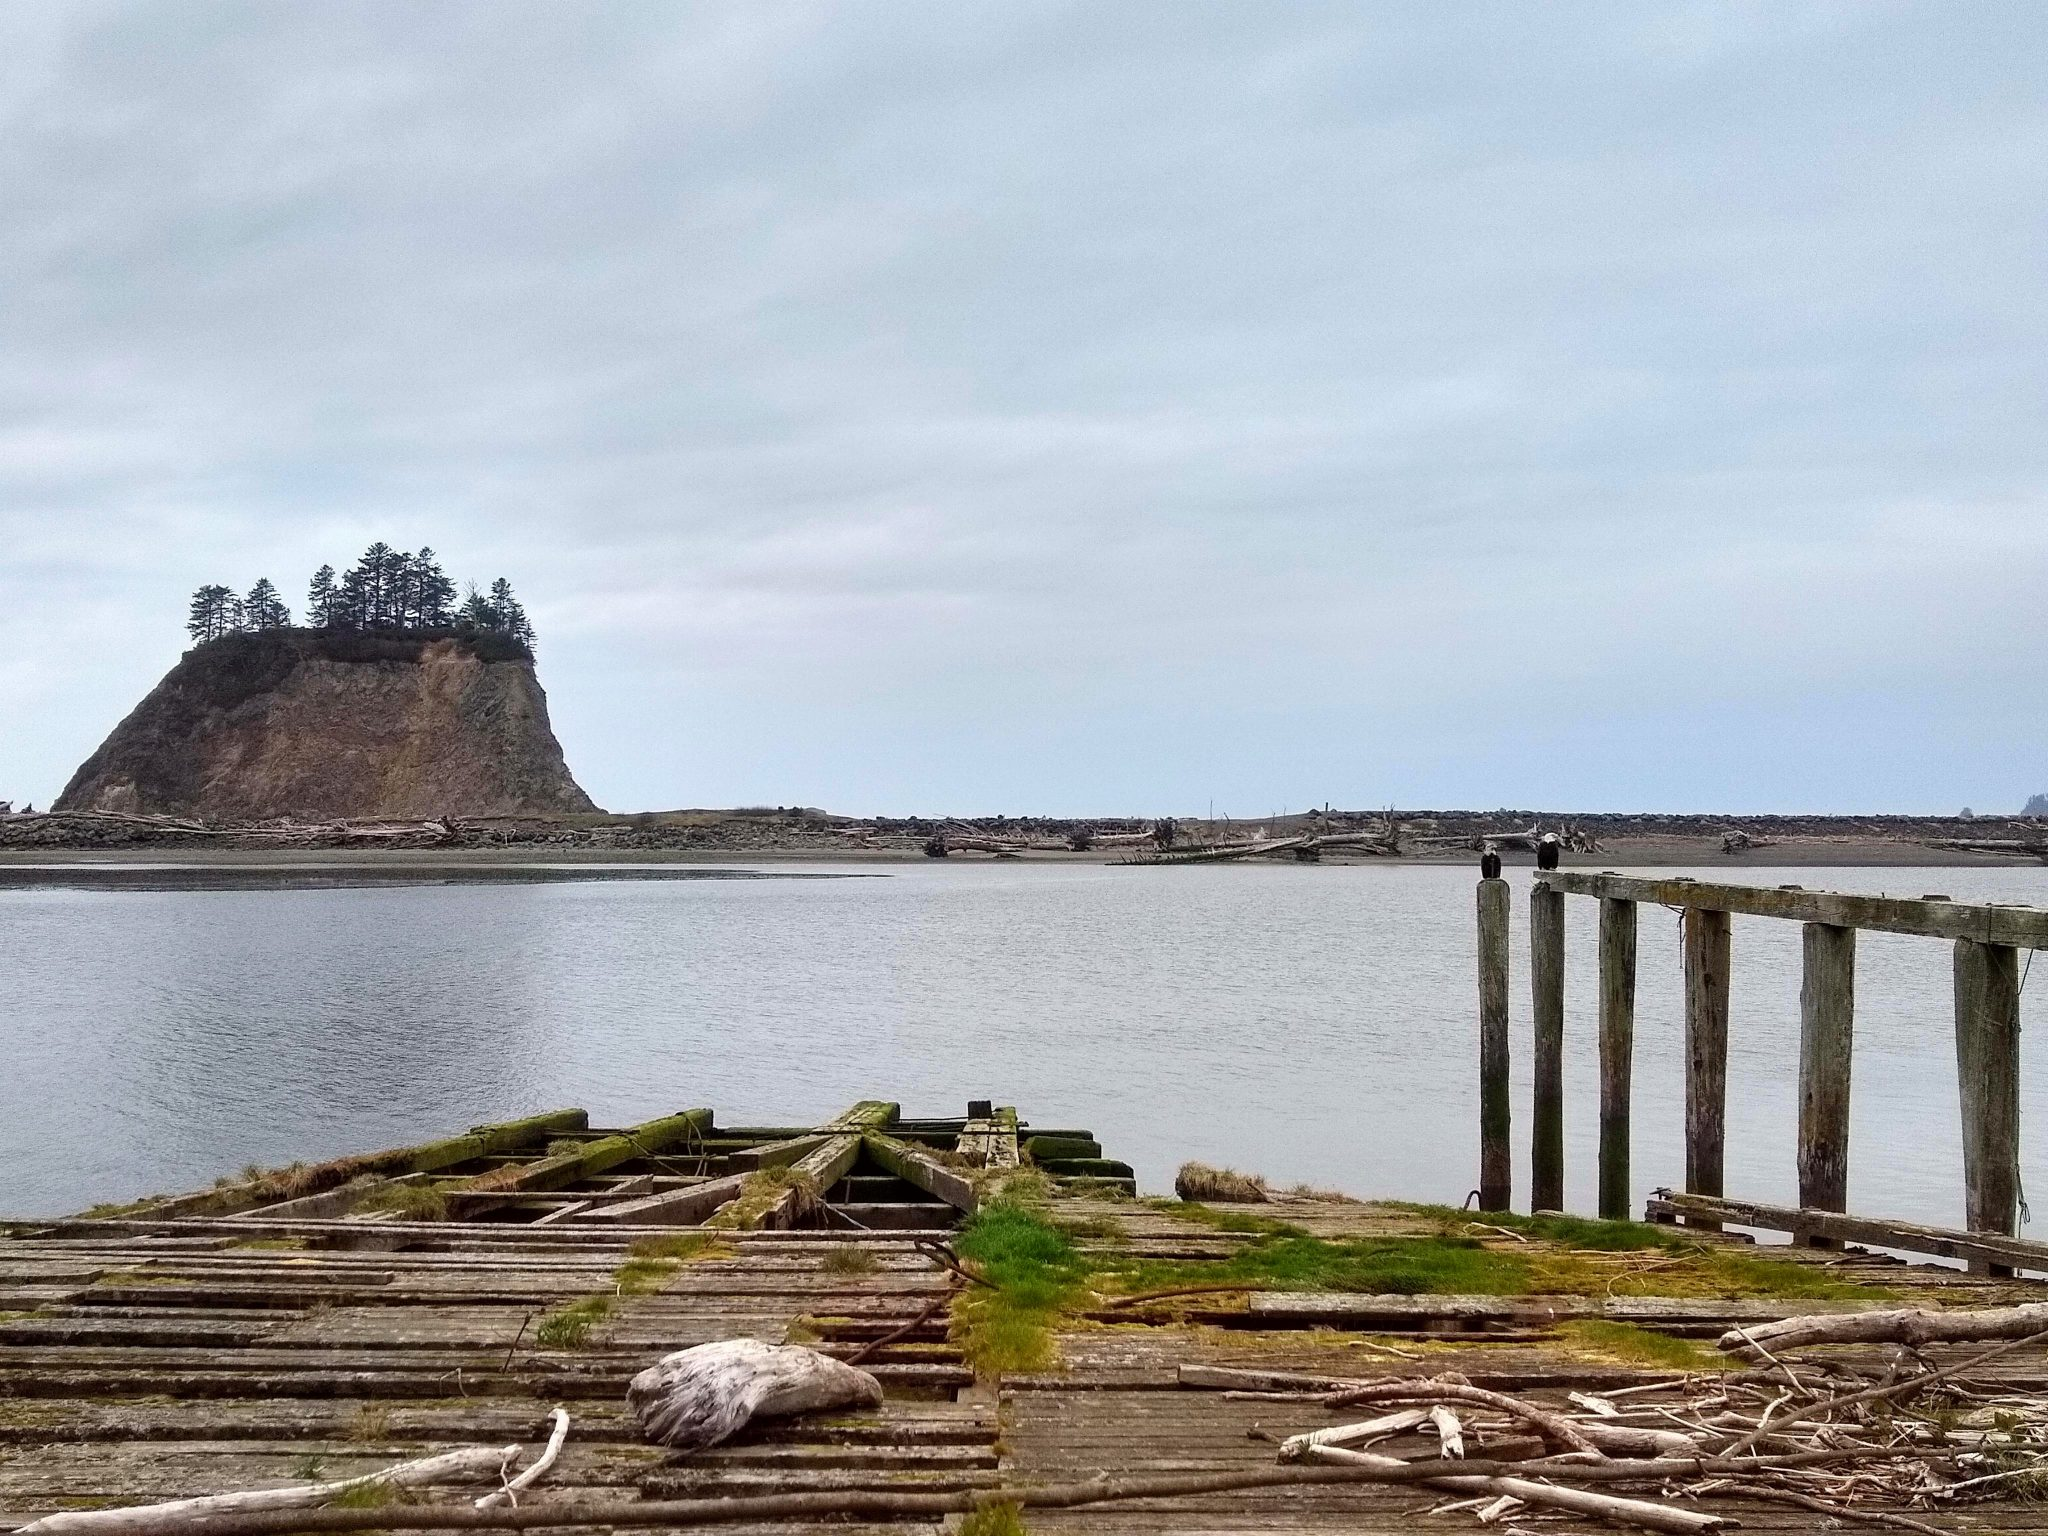 A deteriorating ramp and pier. There is a small island in the distance and a beach across a bay of the Pacific Ocean. Two eagles are on the pier